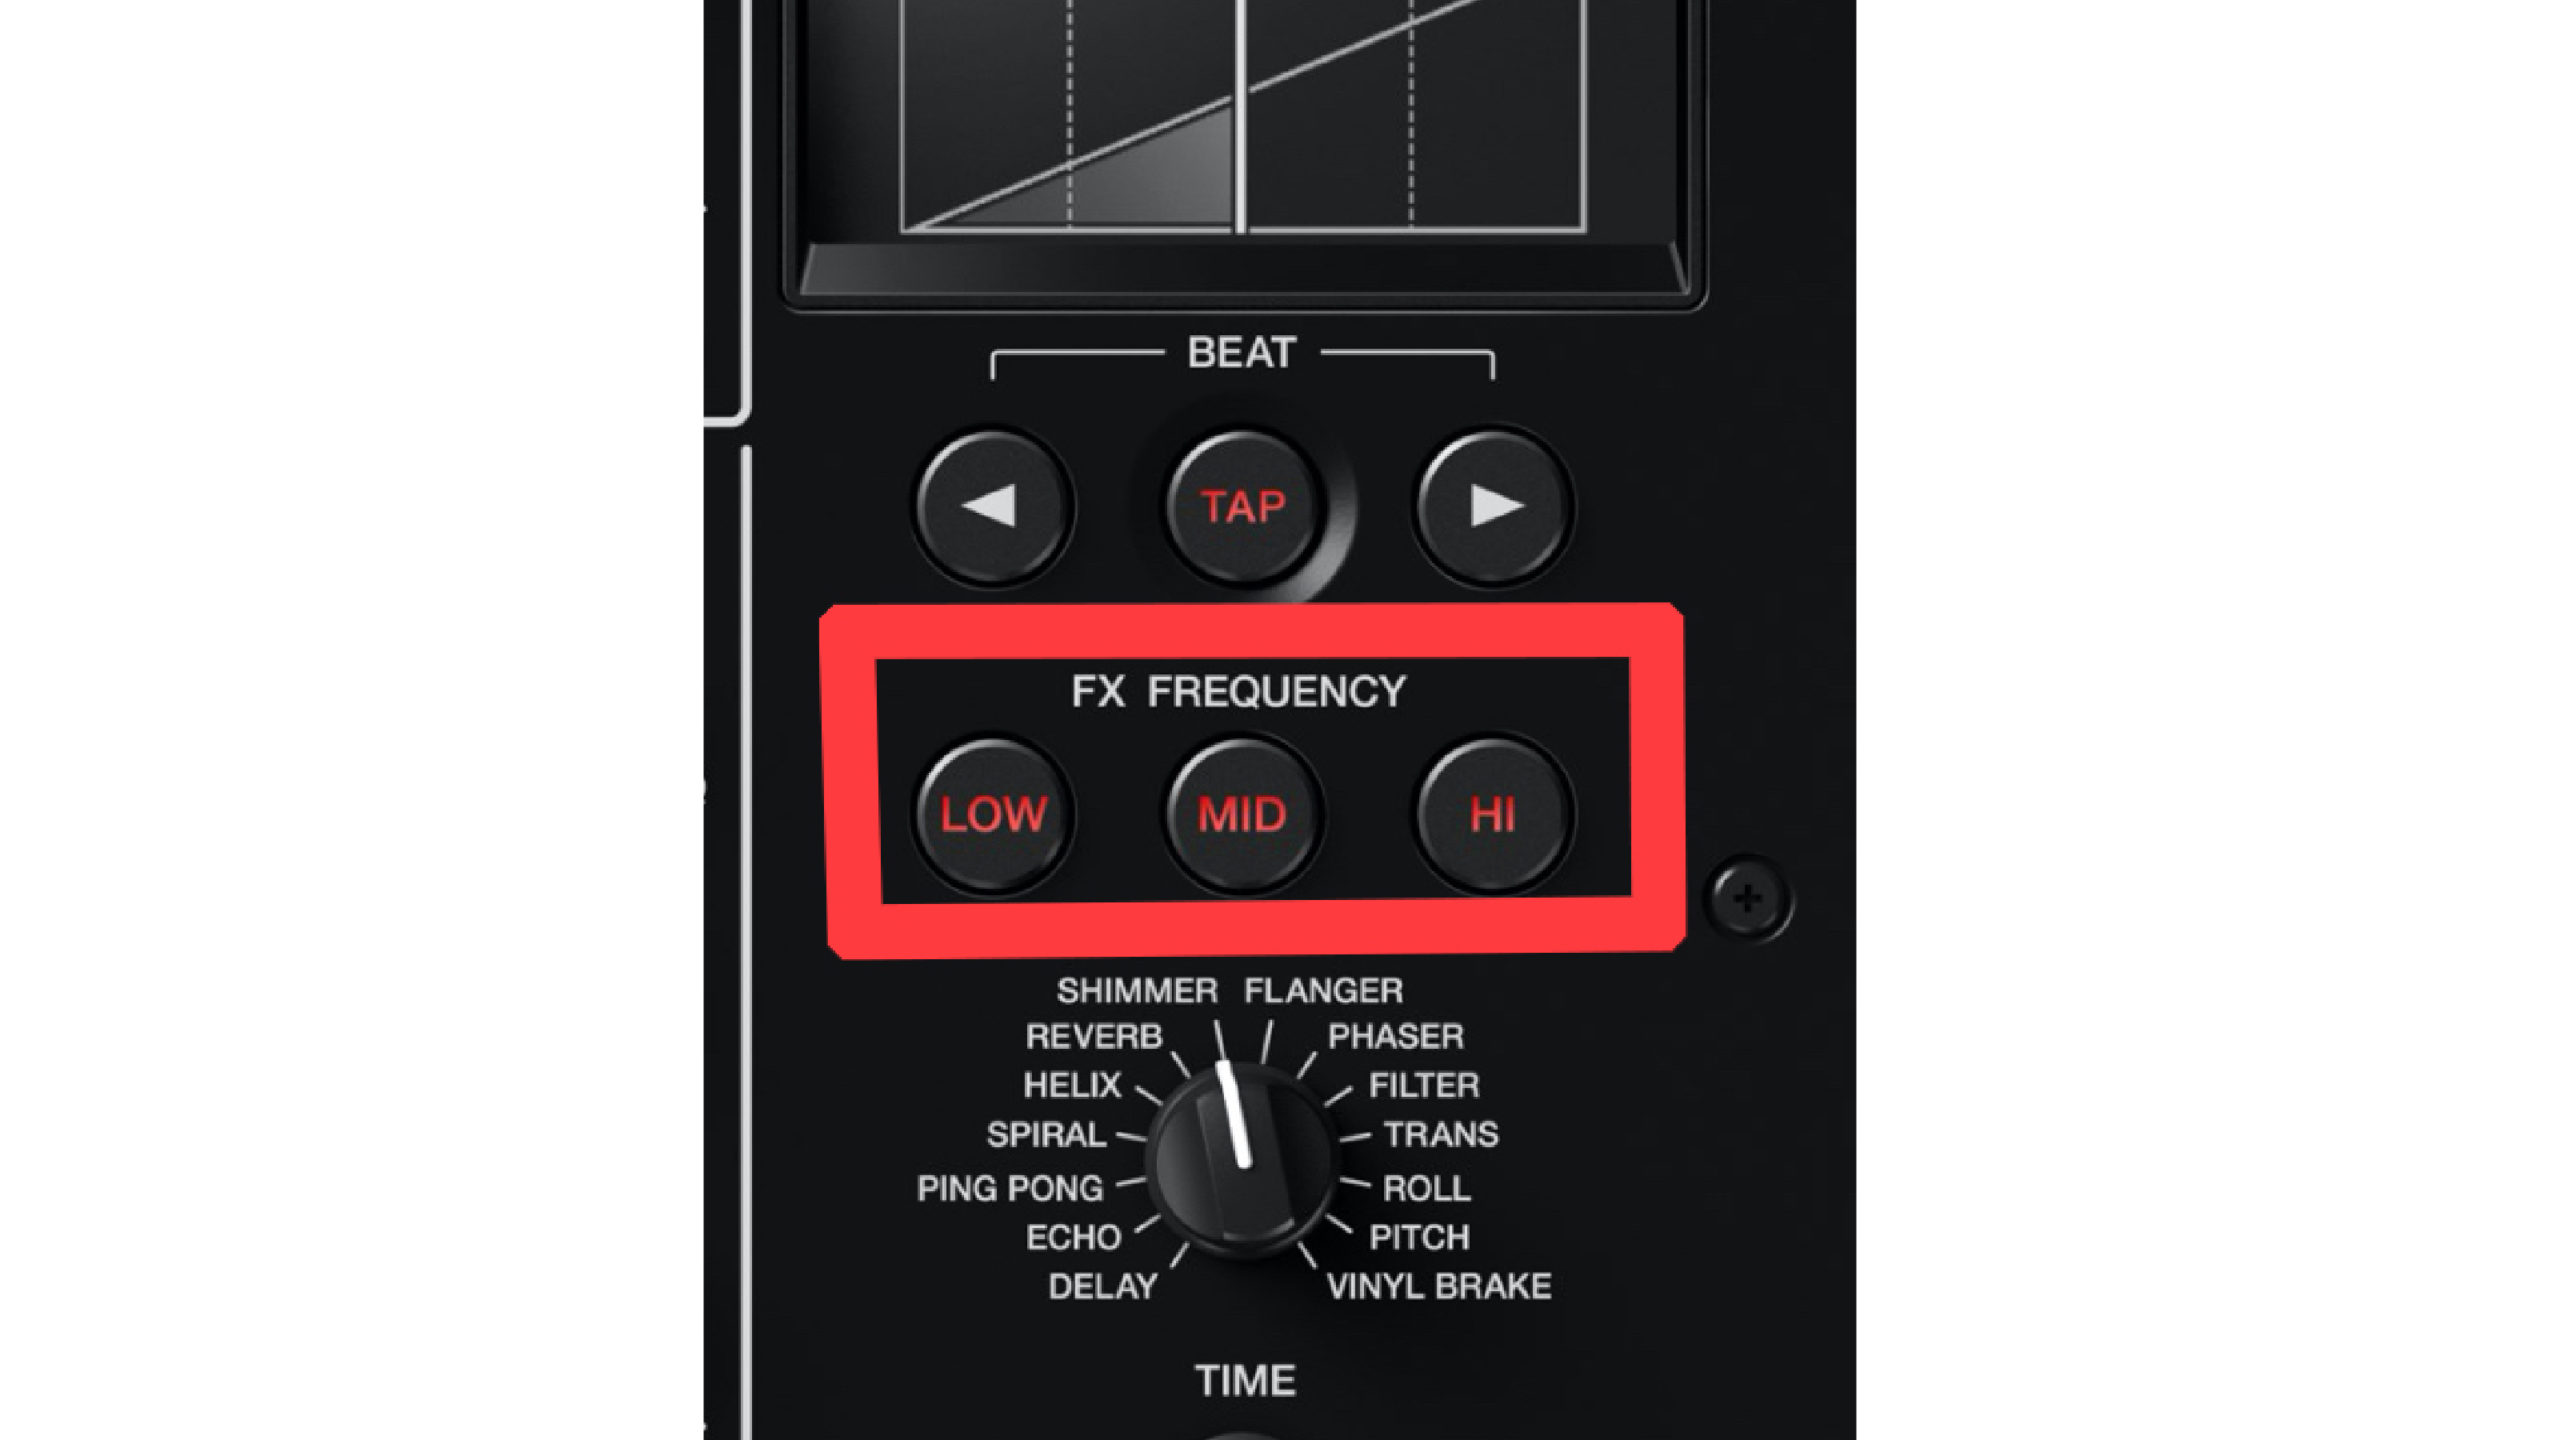 DJM-V10 BEAT FX FX FREQUENCY